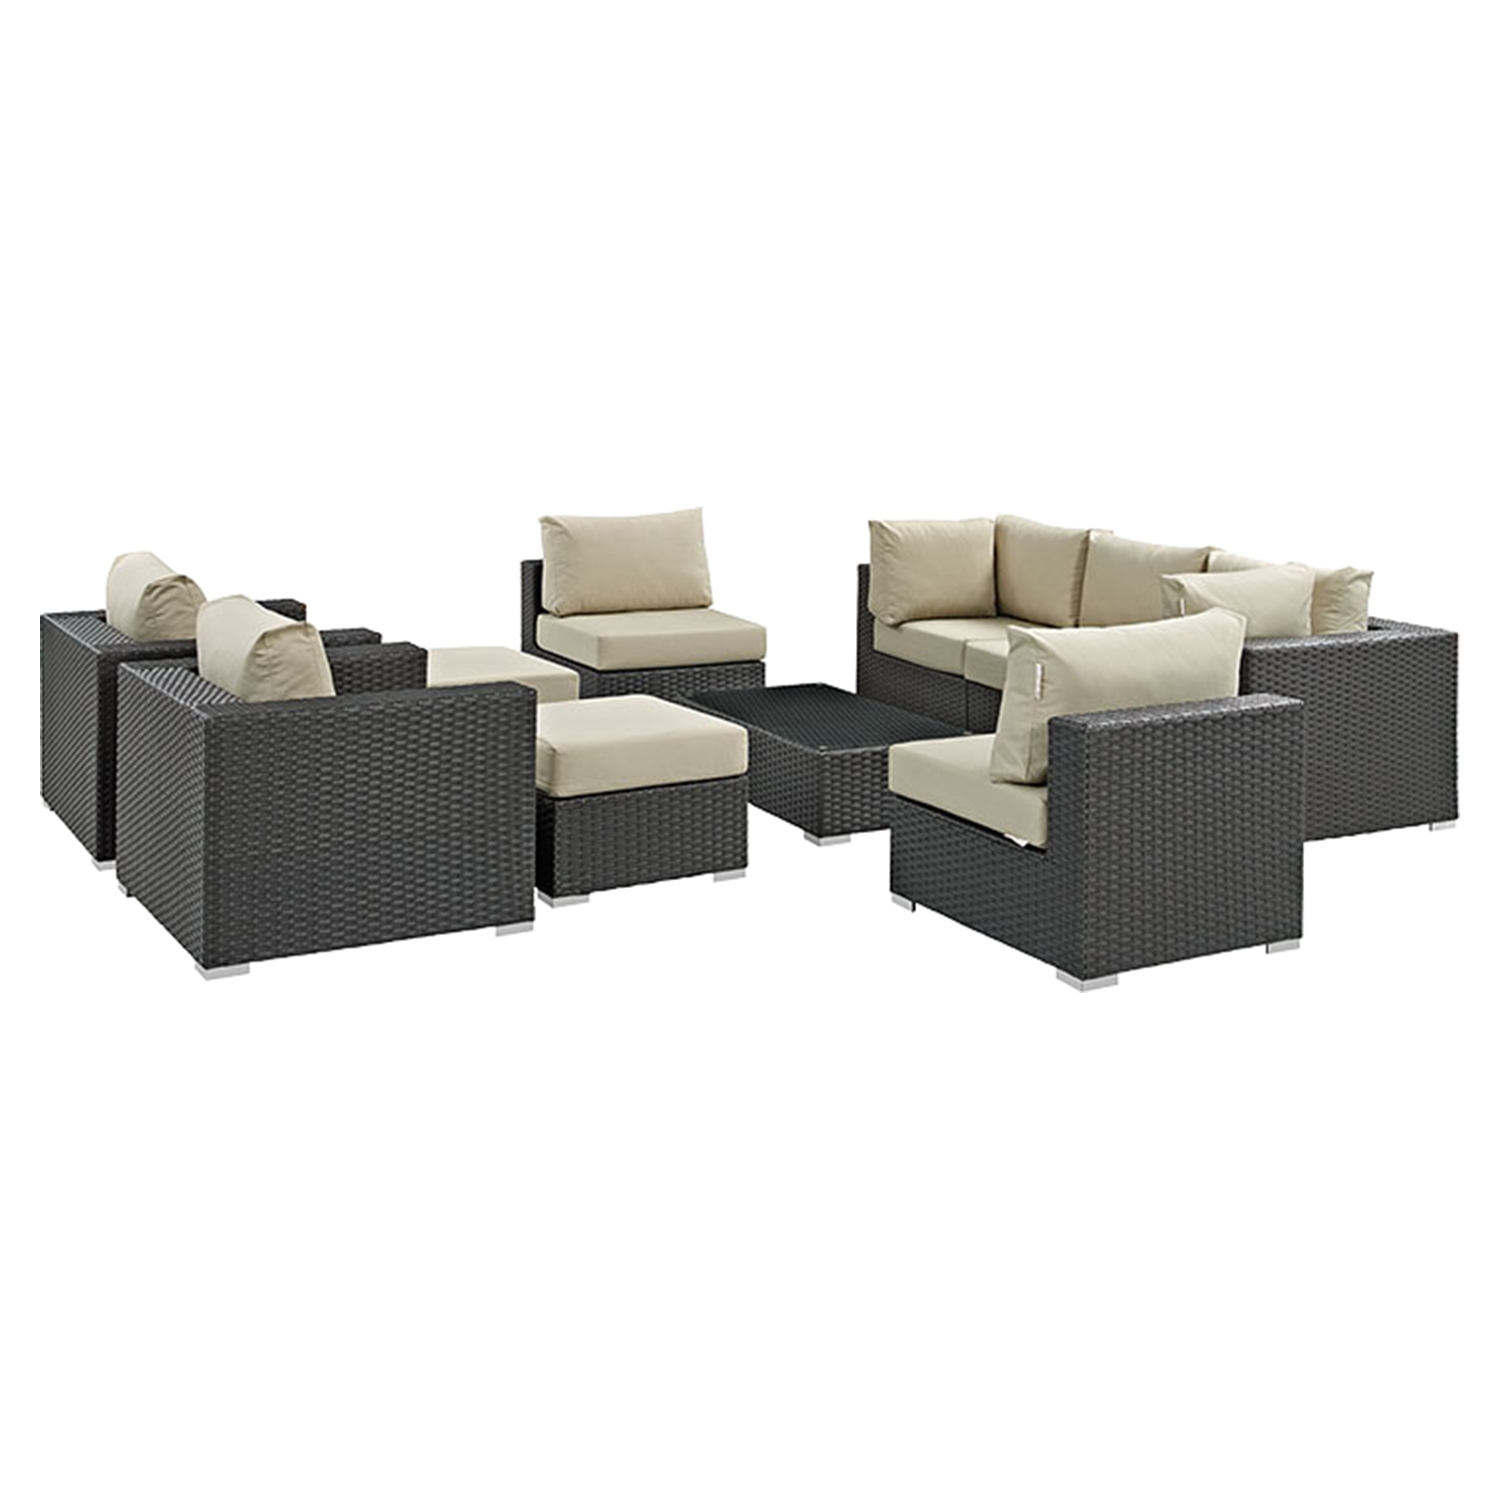 ... Sojourn 10 Pieces Patio Sectional Sofa Set - Sunbrella Canvas Antique Beige - EEI-1888 ...  sc 1 st  DCG Stores : antique sectional sofa - Sectionals, Sofas & Couches